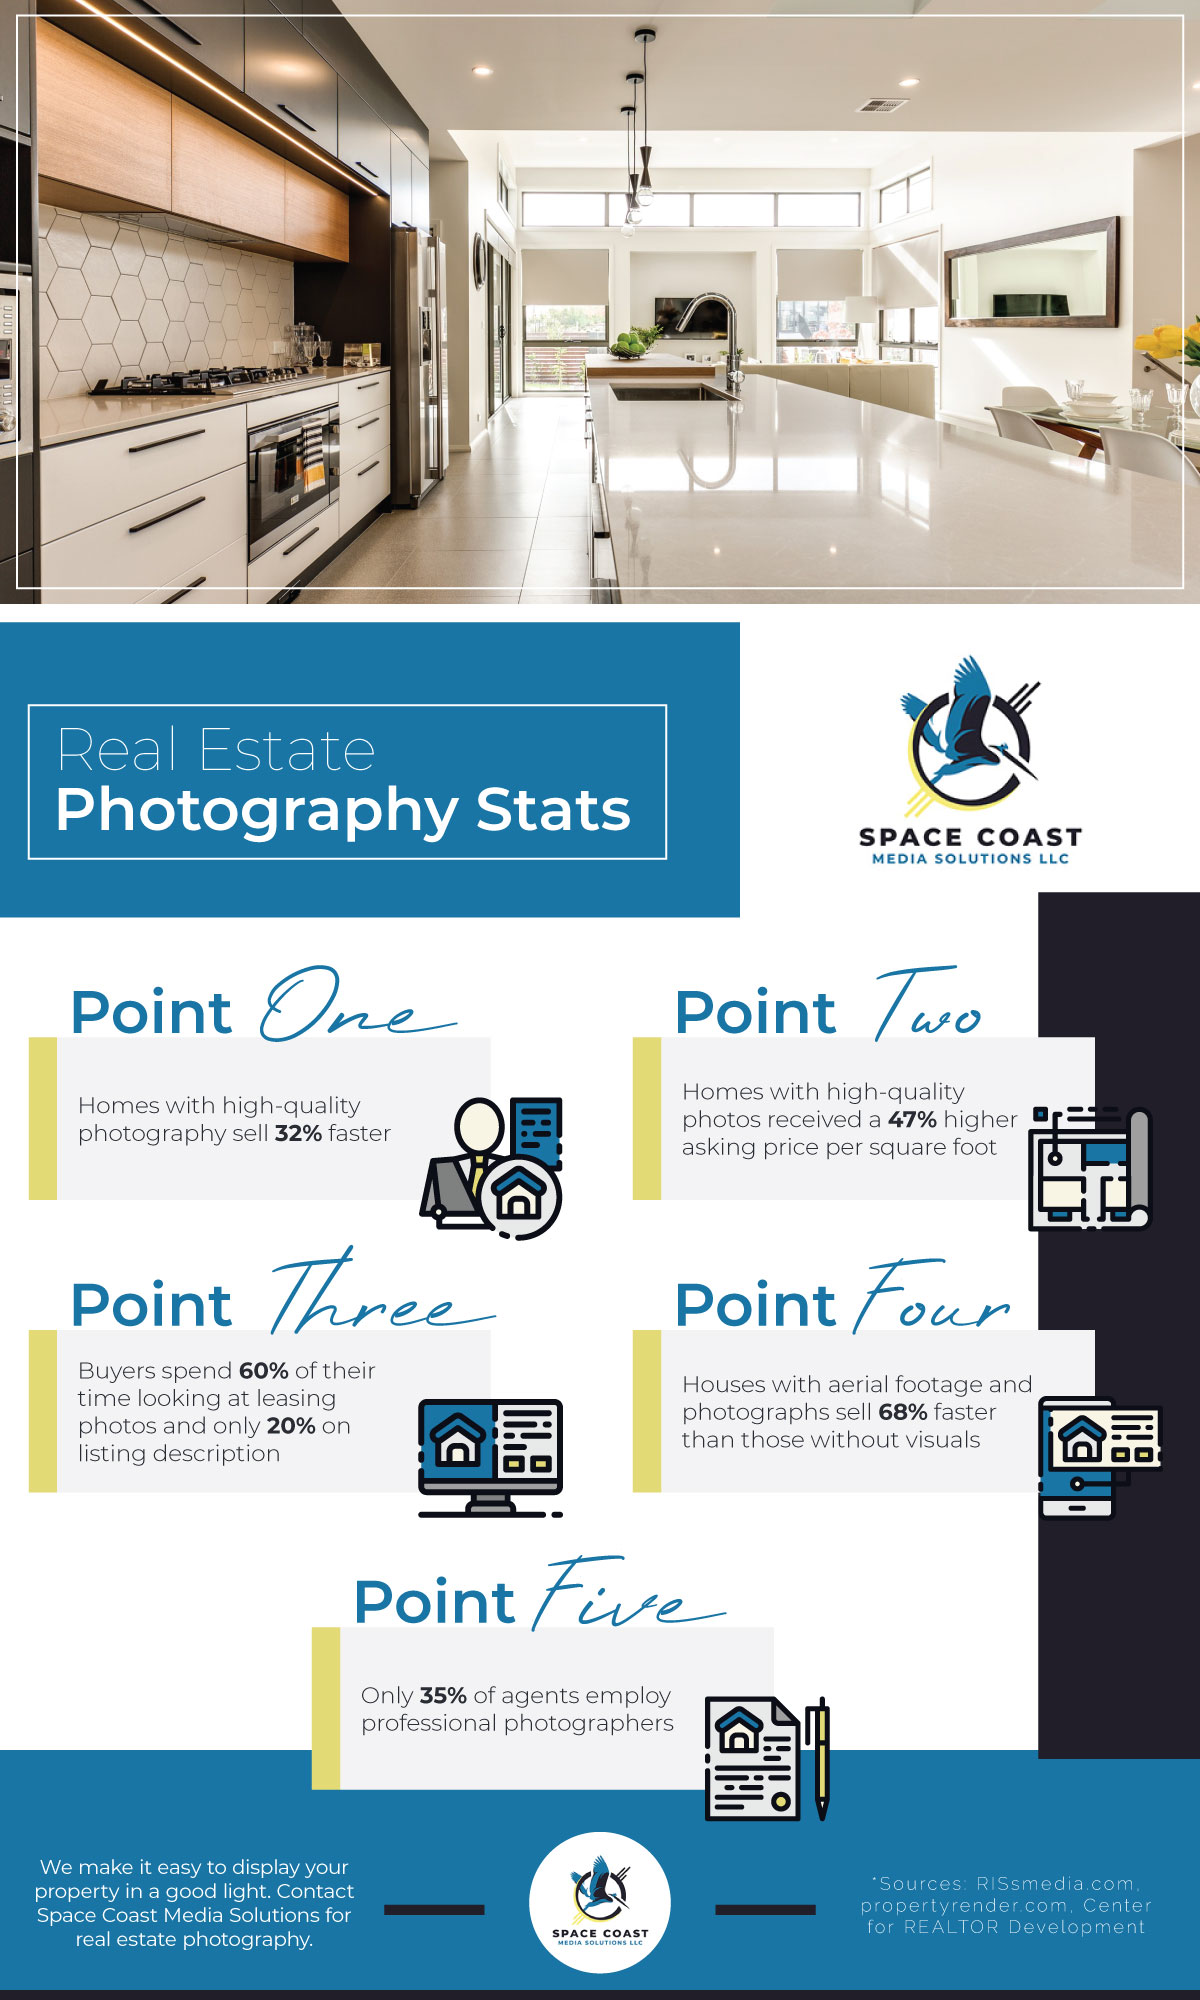 M14783---Space-Coast-Media-Solutions-LLC---Real-Estate-Photography-Stats